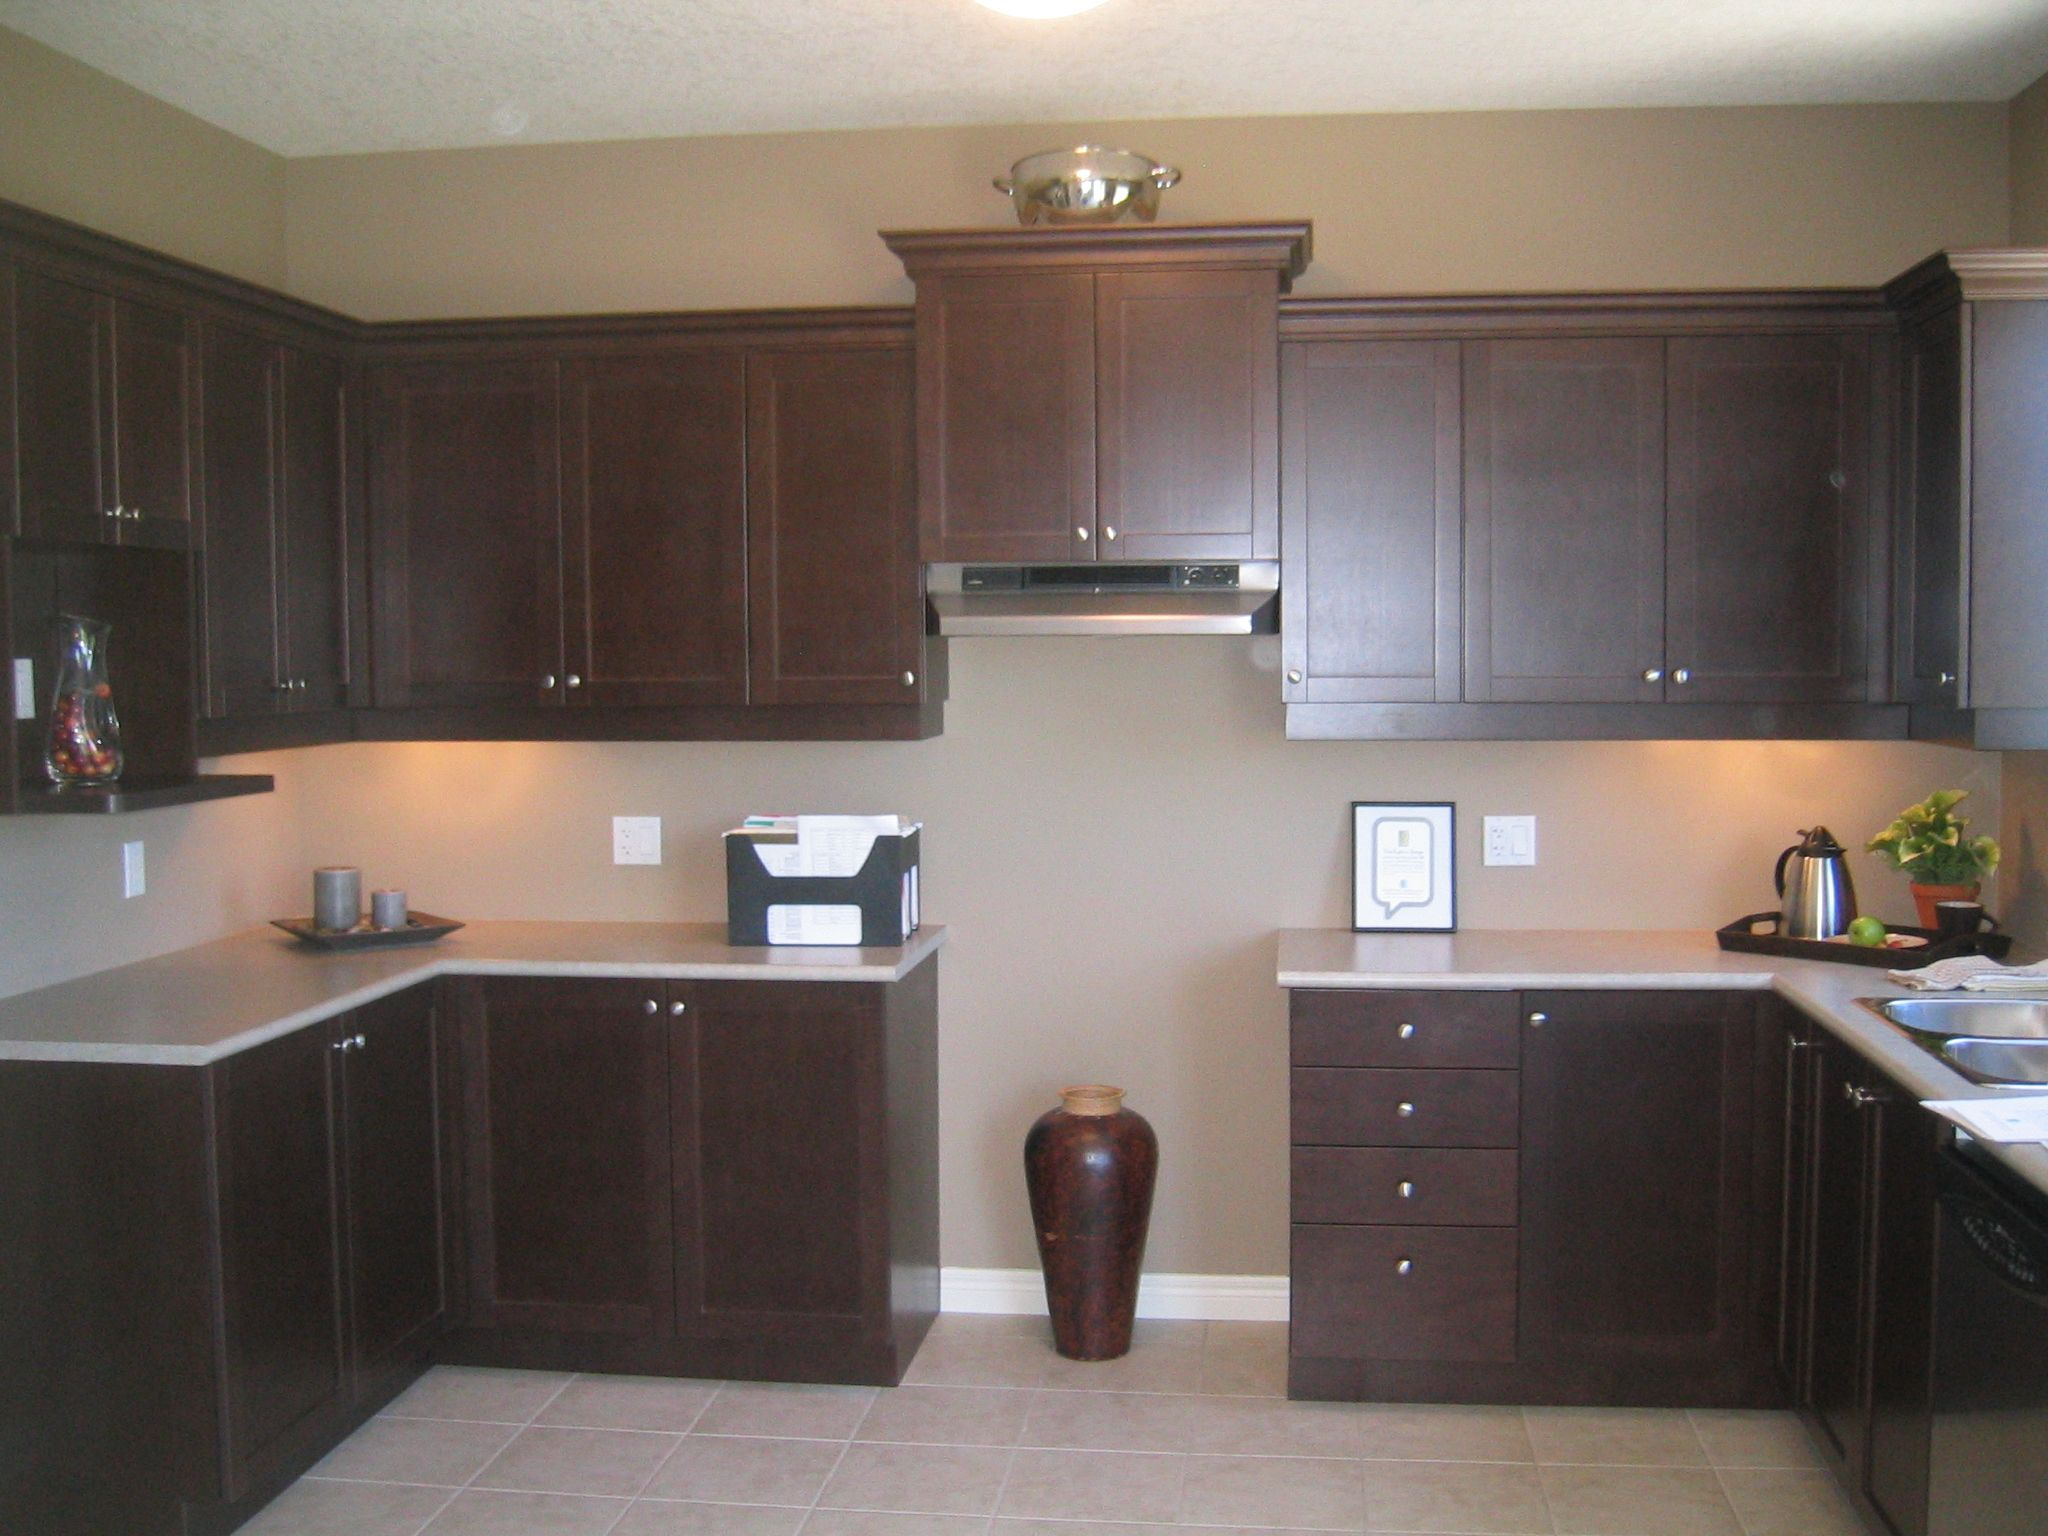 coffee color kitchen cabinets cotton towels what to paint walls with espresso